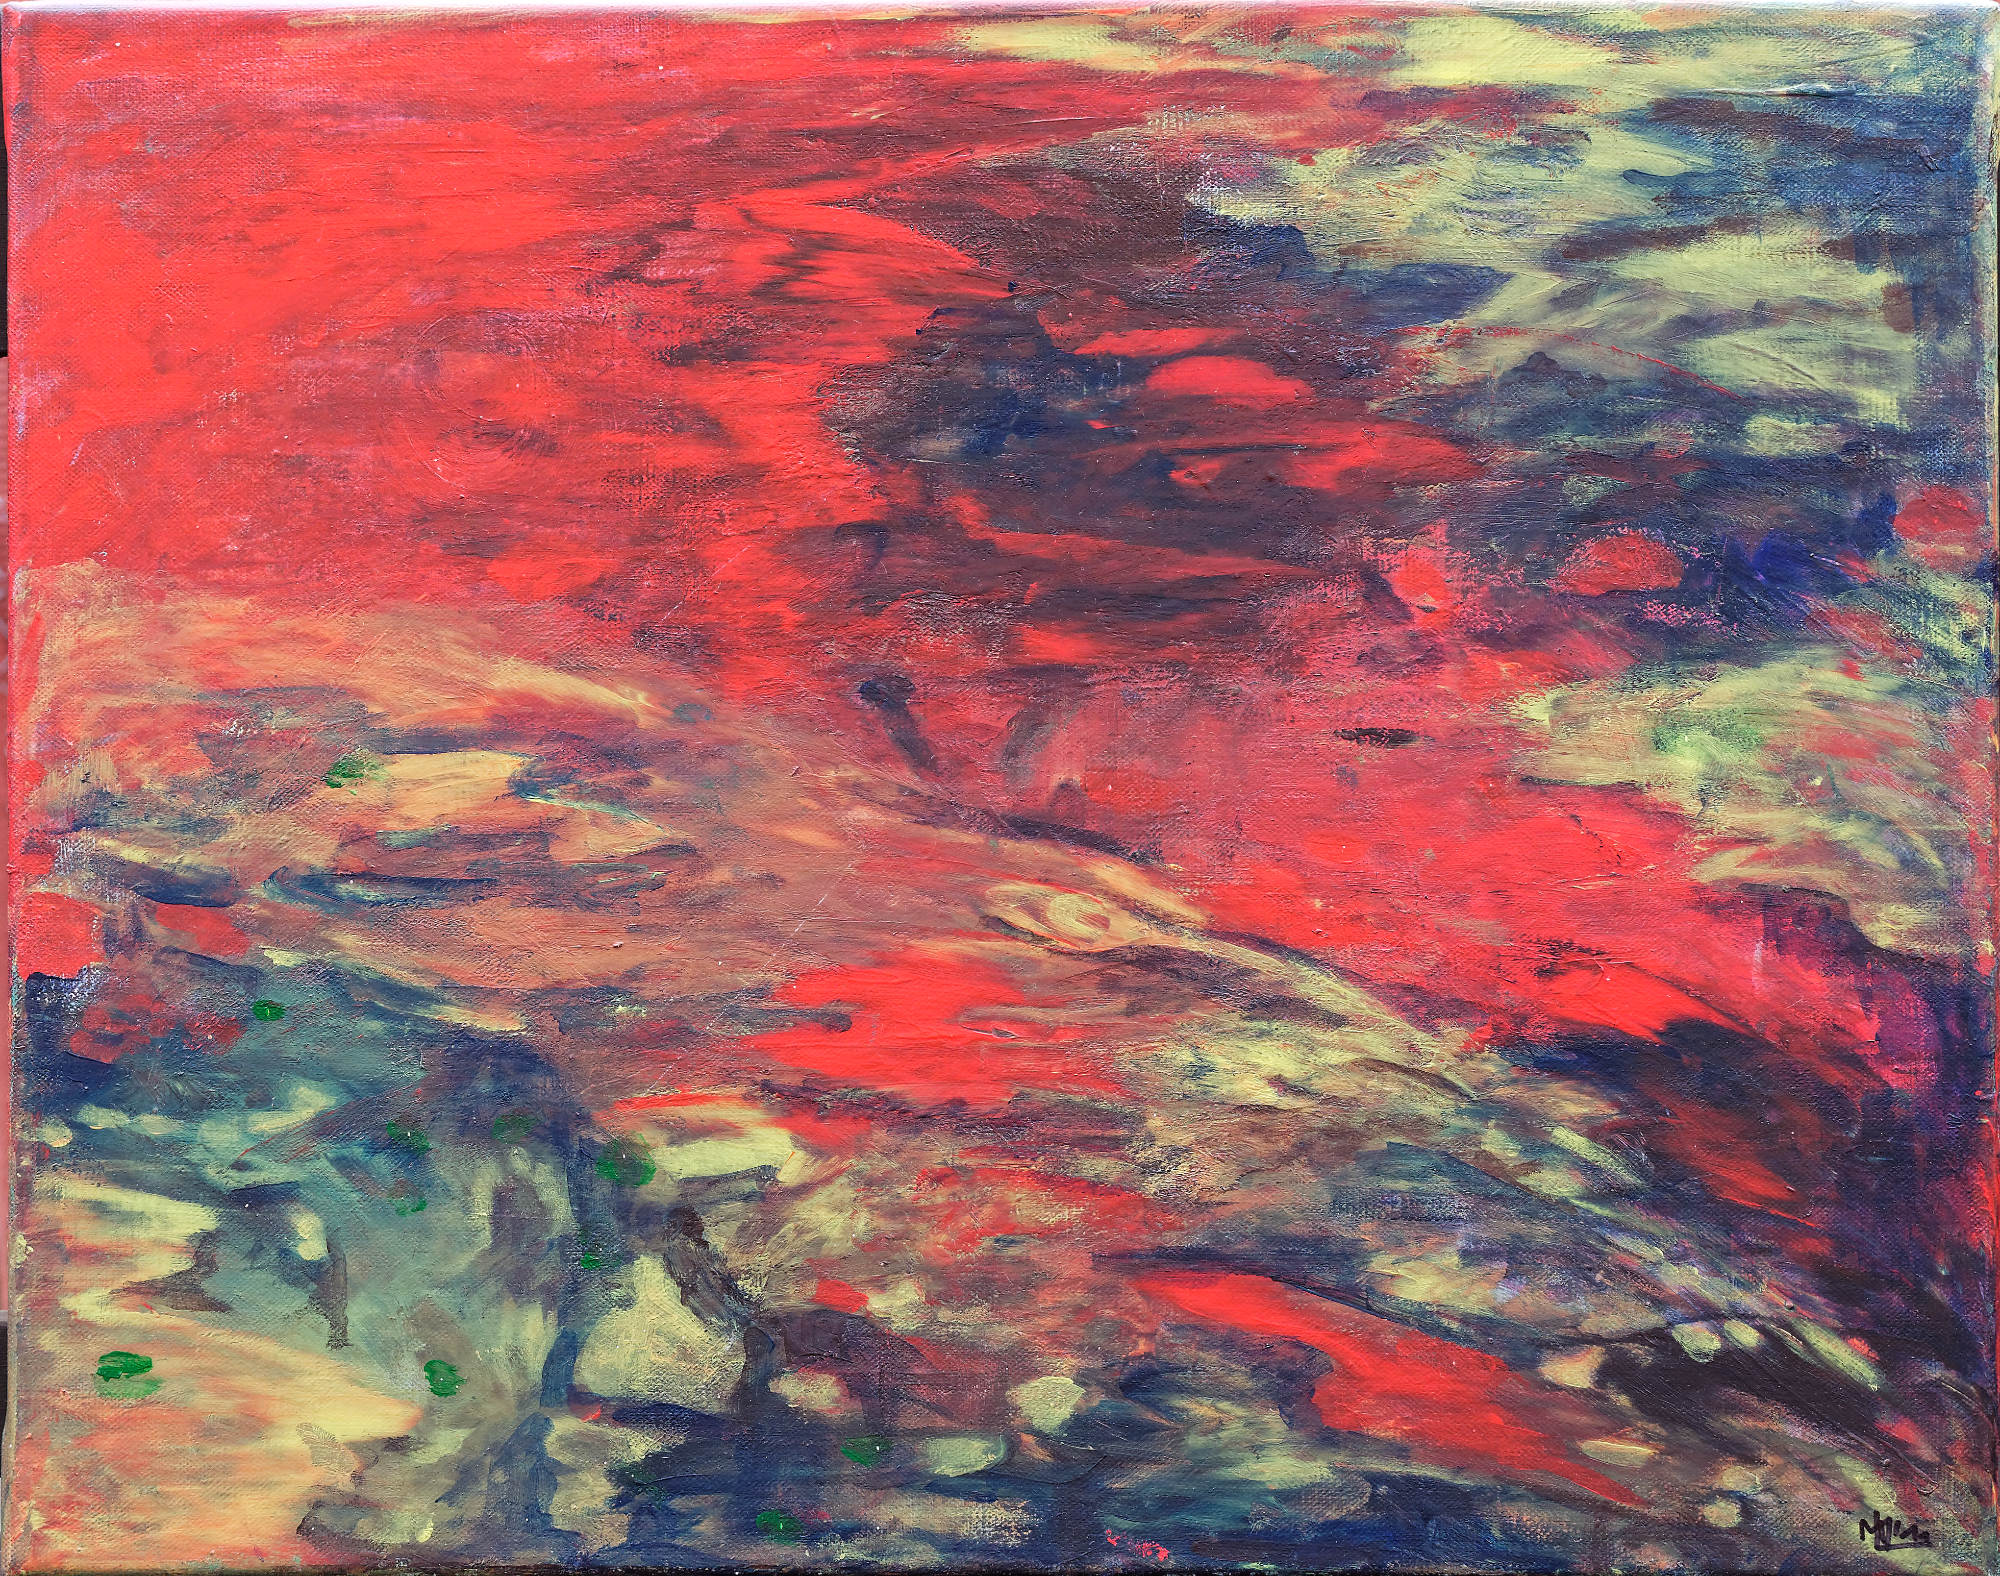 2009 - Phantasie (Komposition in Rot), 50x40cm, Acryl